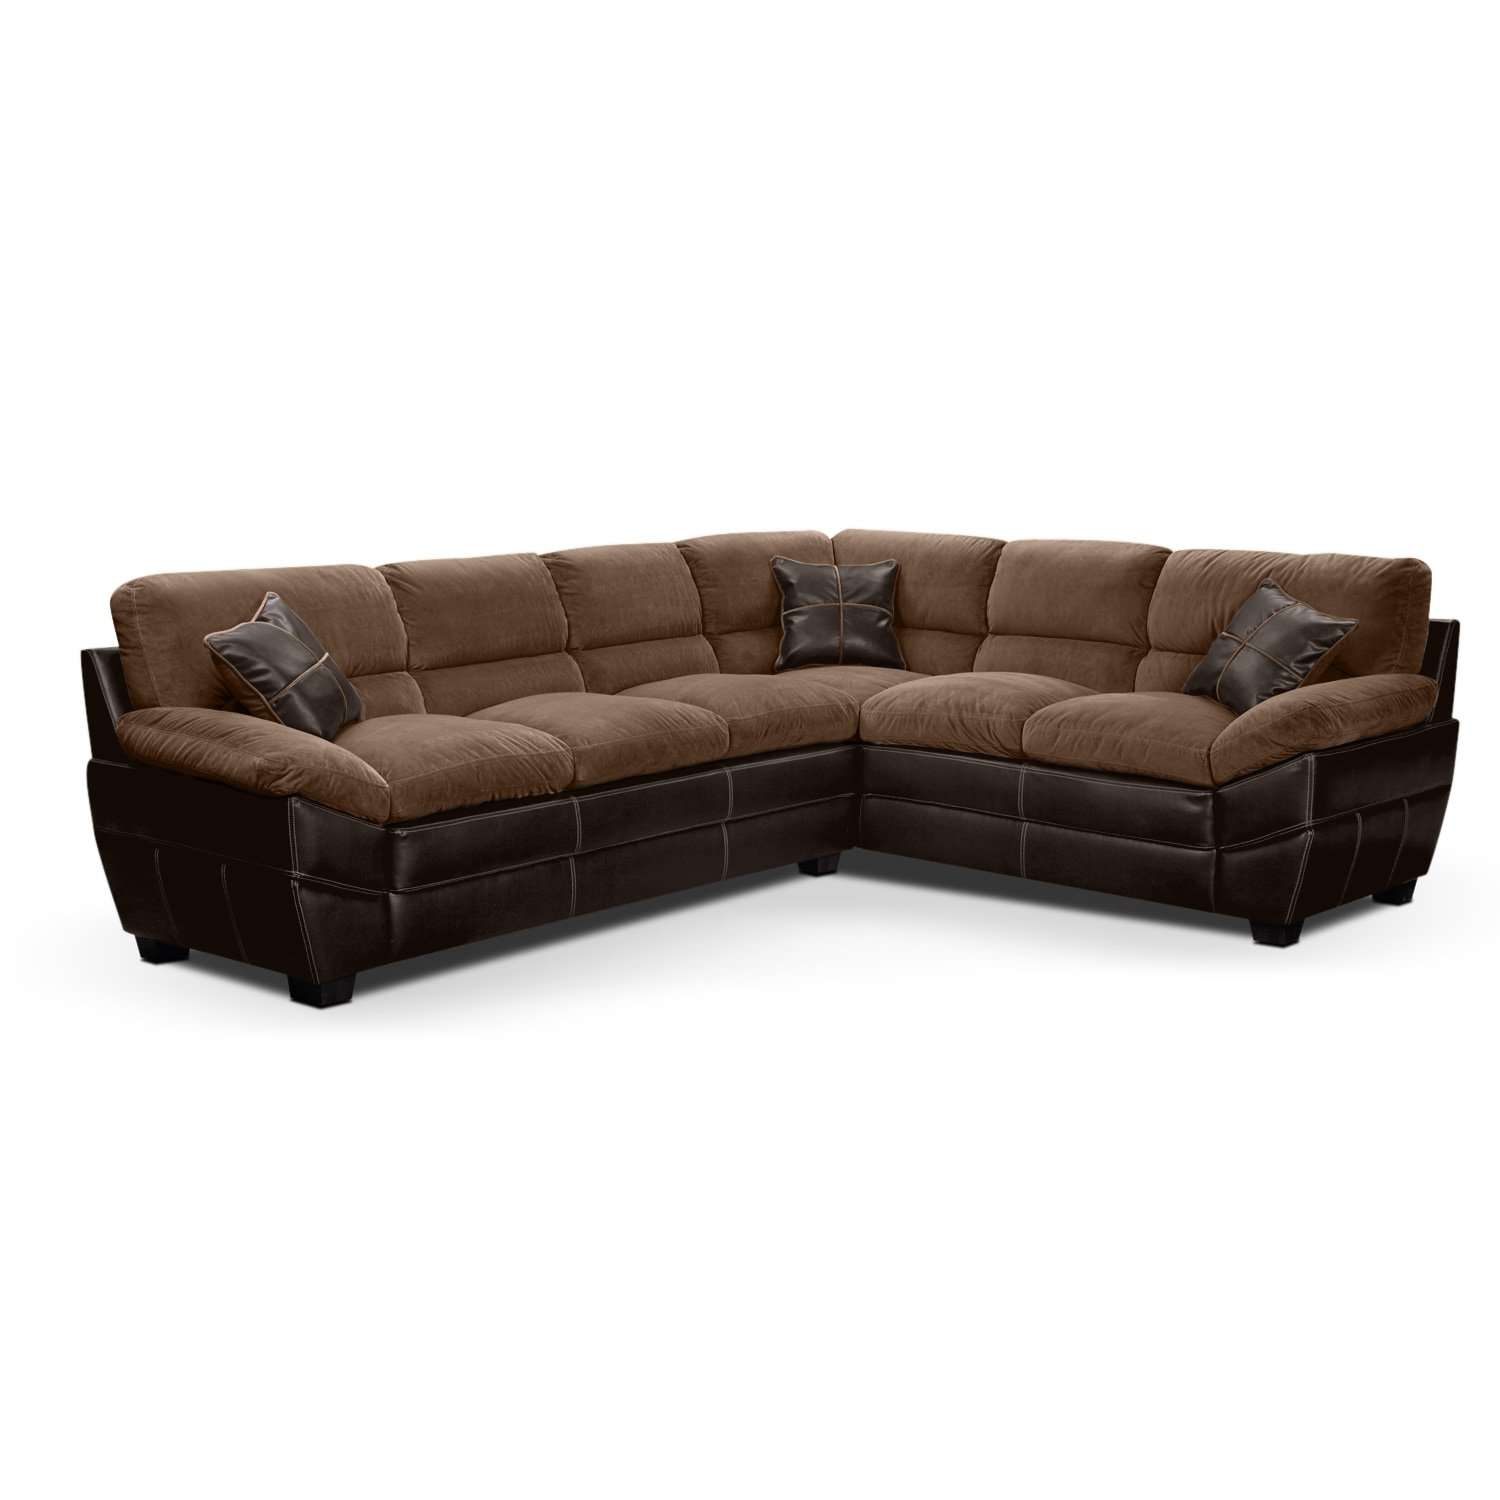 Living Room Furniture - Chandler 2-Piece Left-Facing Sectional - Beige and Brown